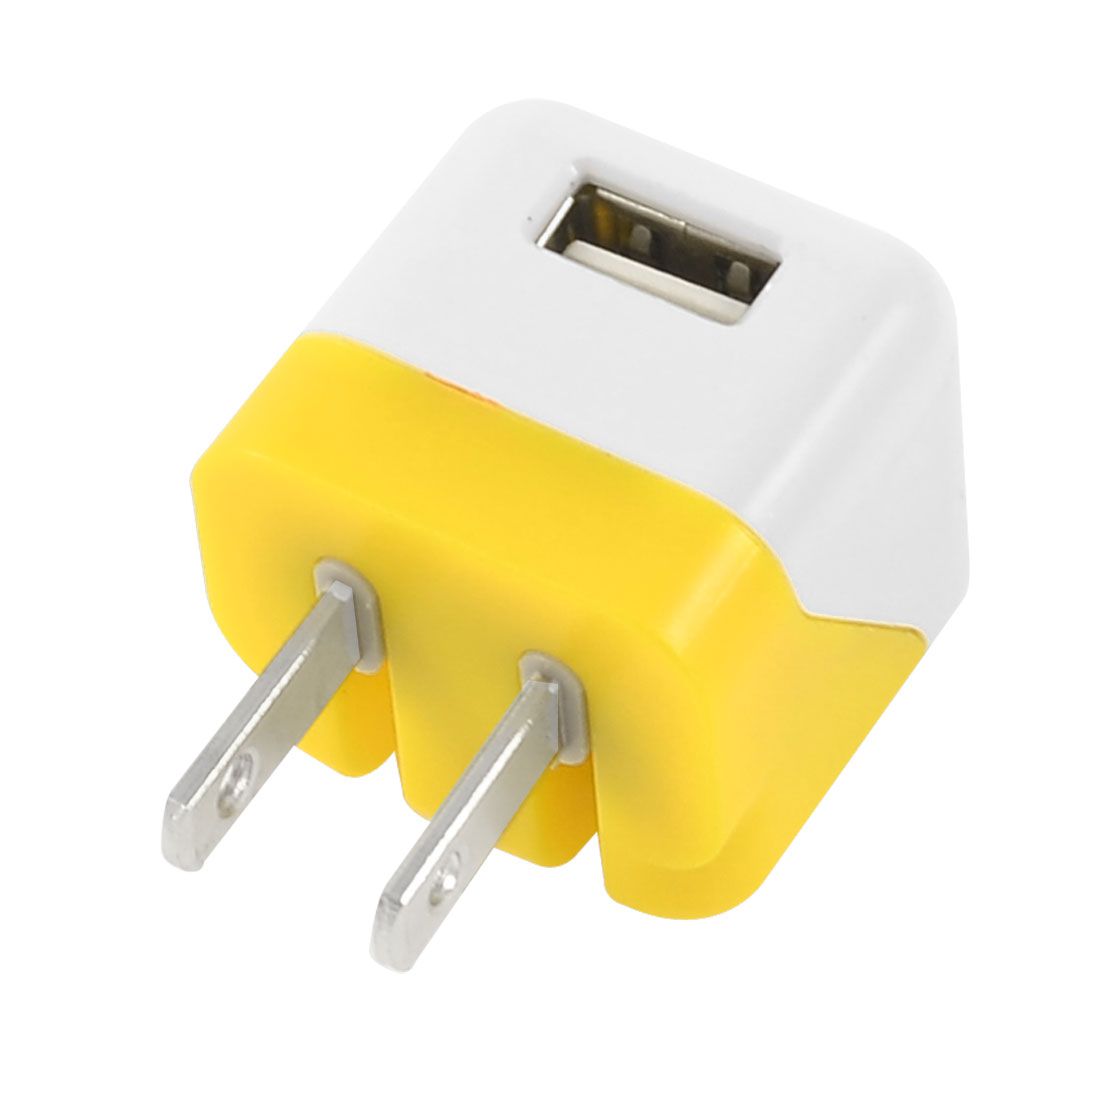 AC 100-240V US Plug to USB 2.0 Charger Adapter Yellow White for Mp3 Phone